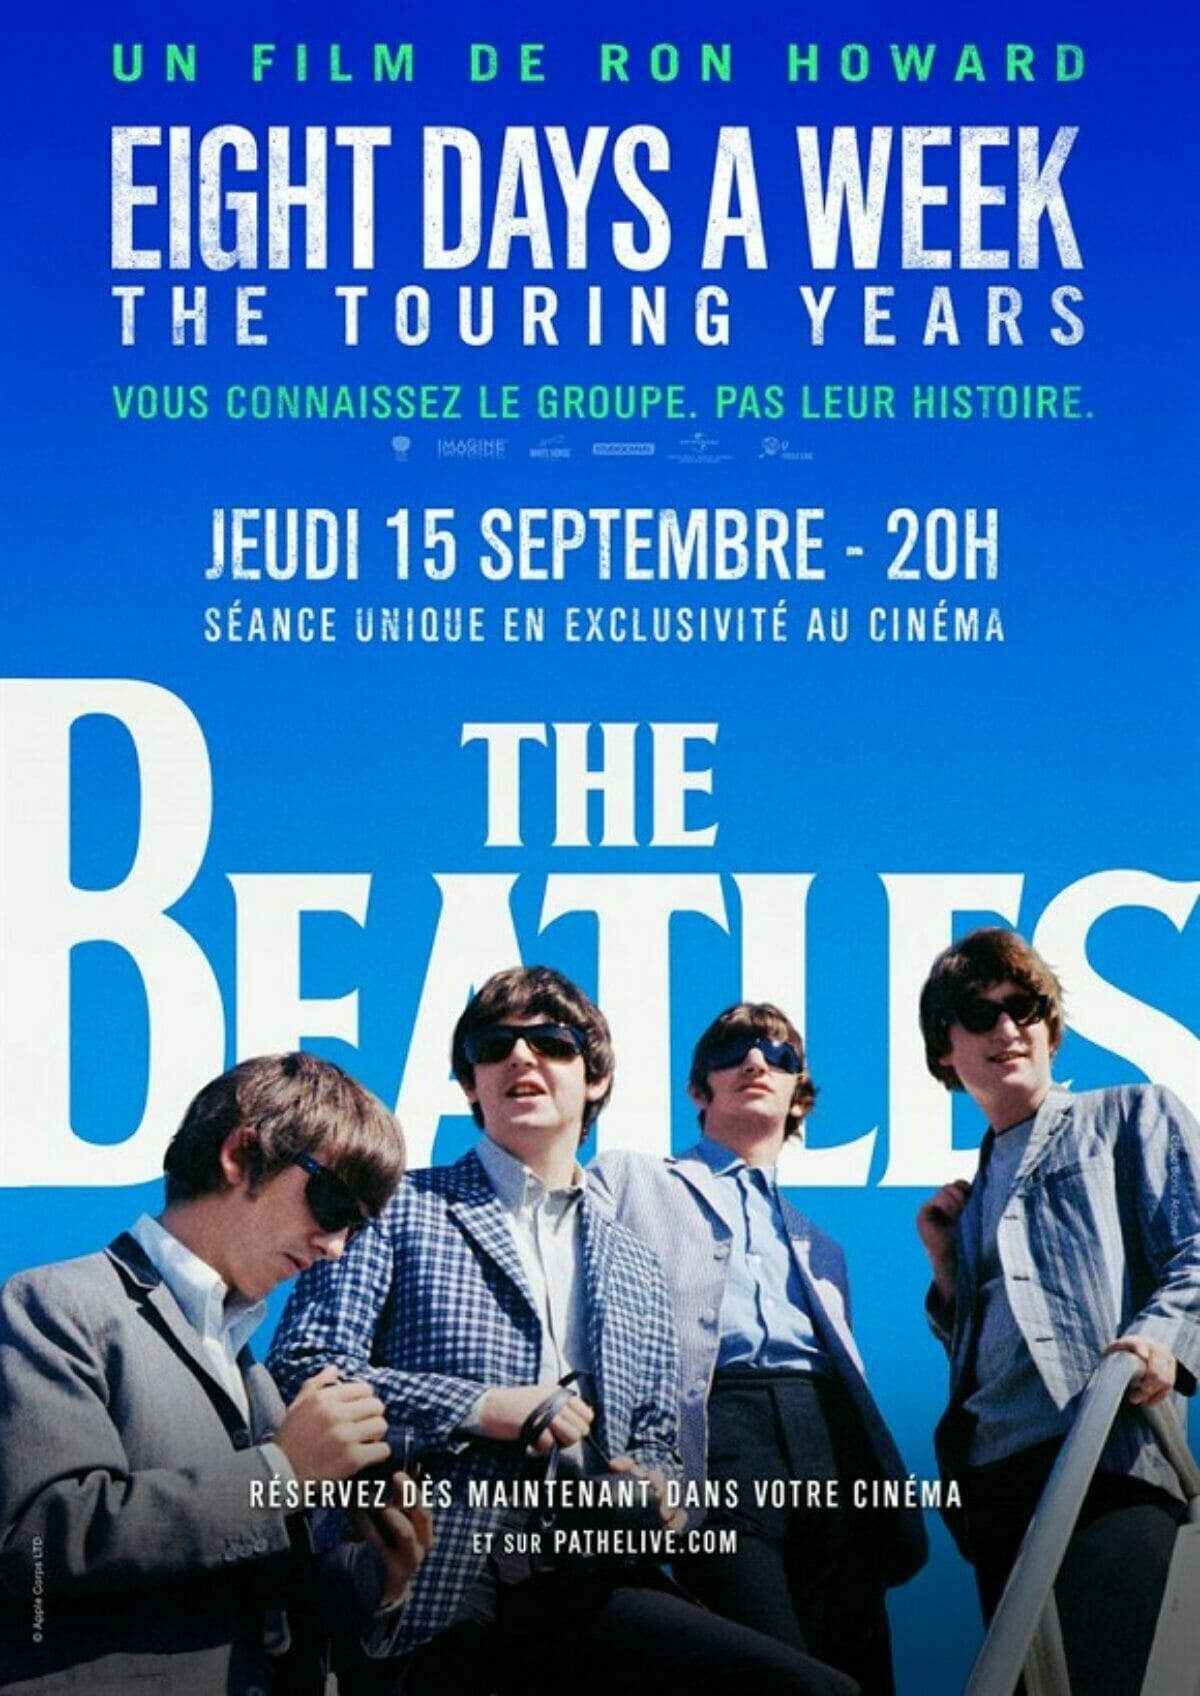 the-beatles-eight-days-a-week-poster